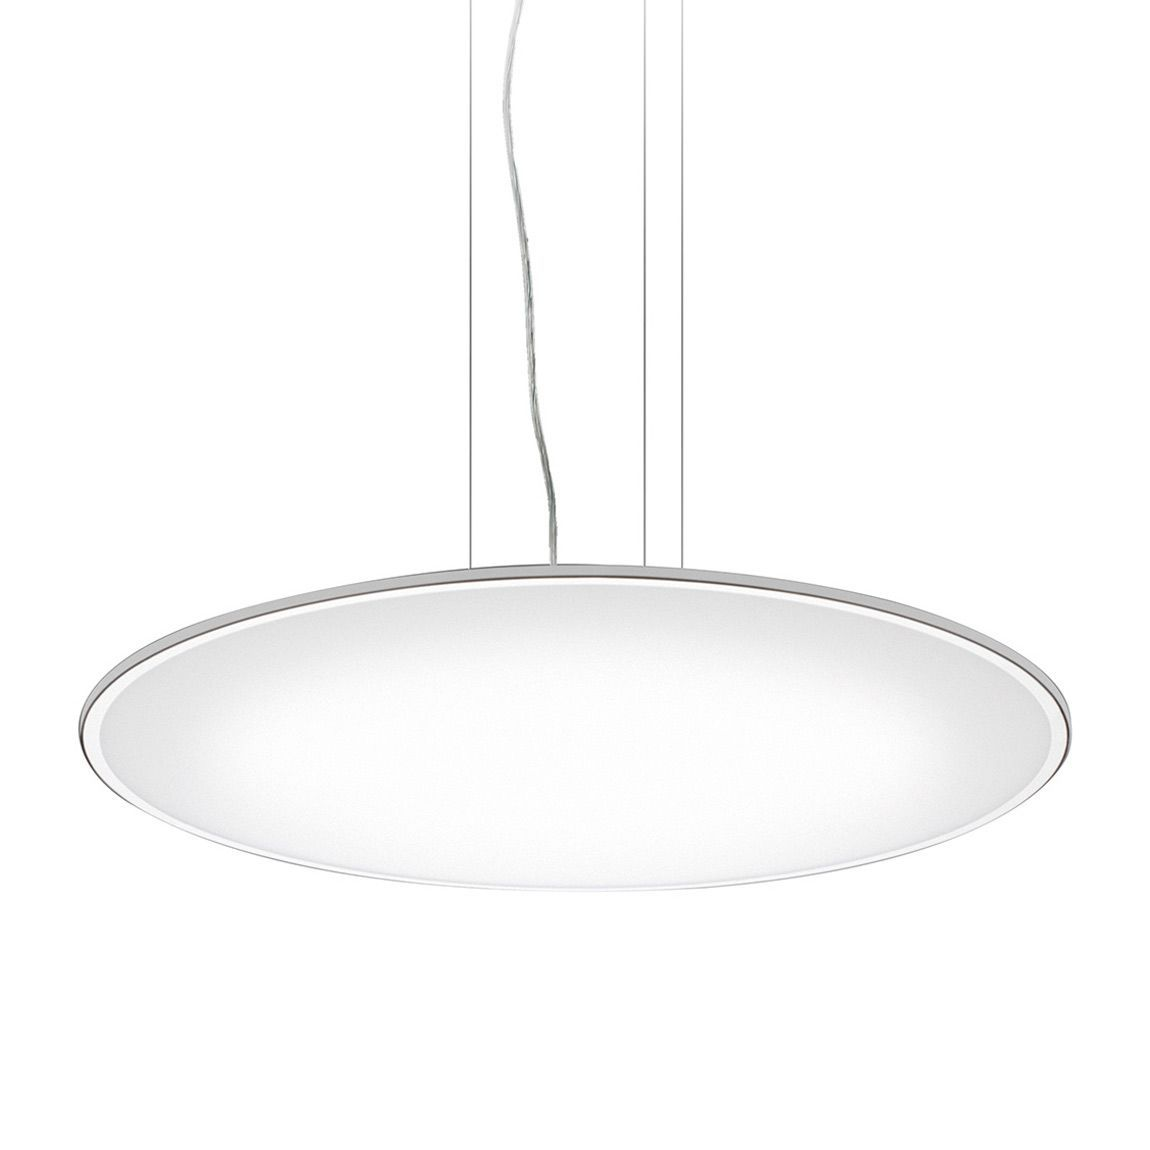 Vibia Big hanglamp dimbaar small